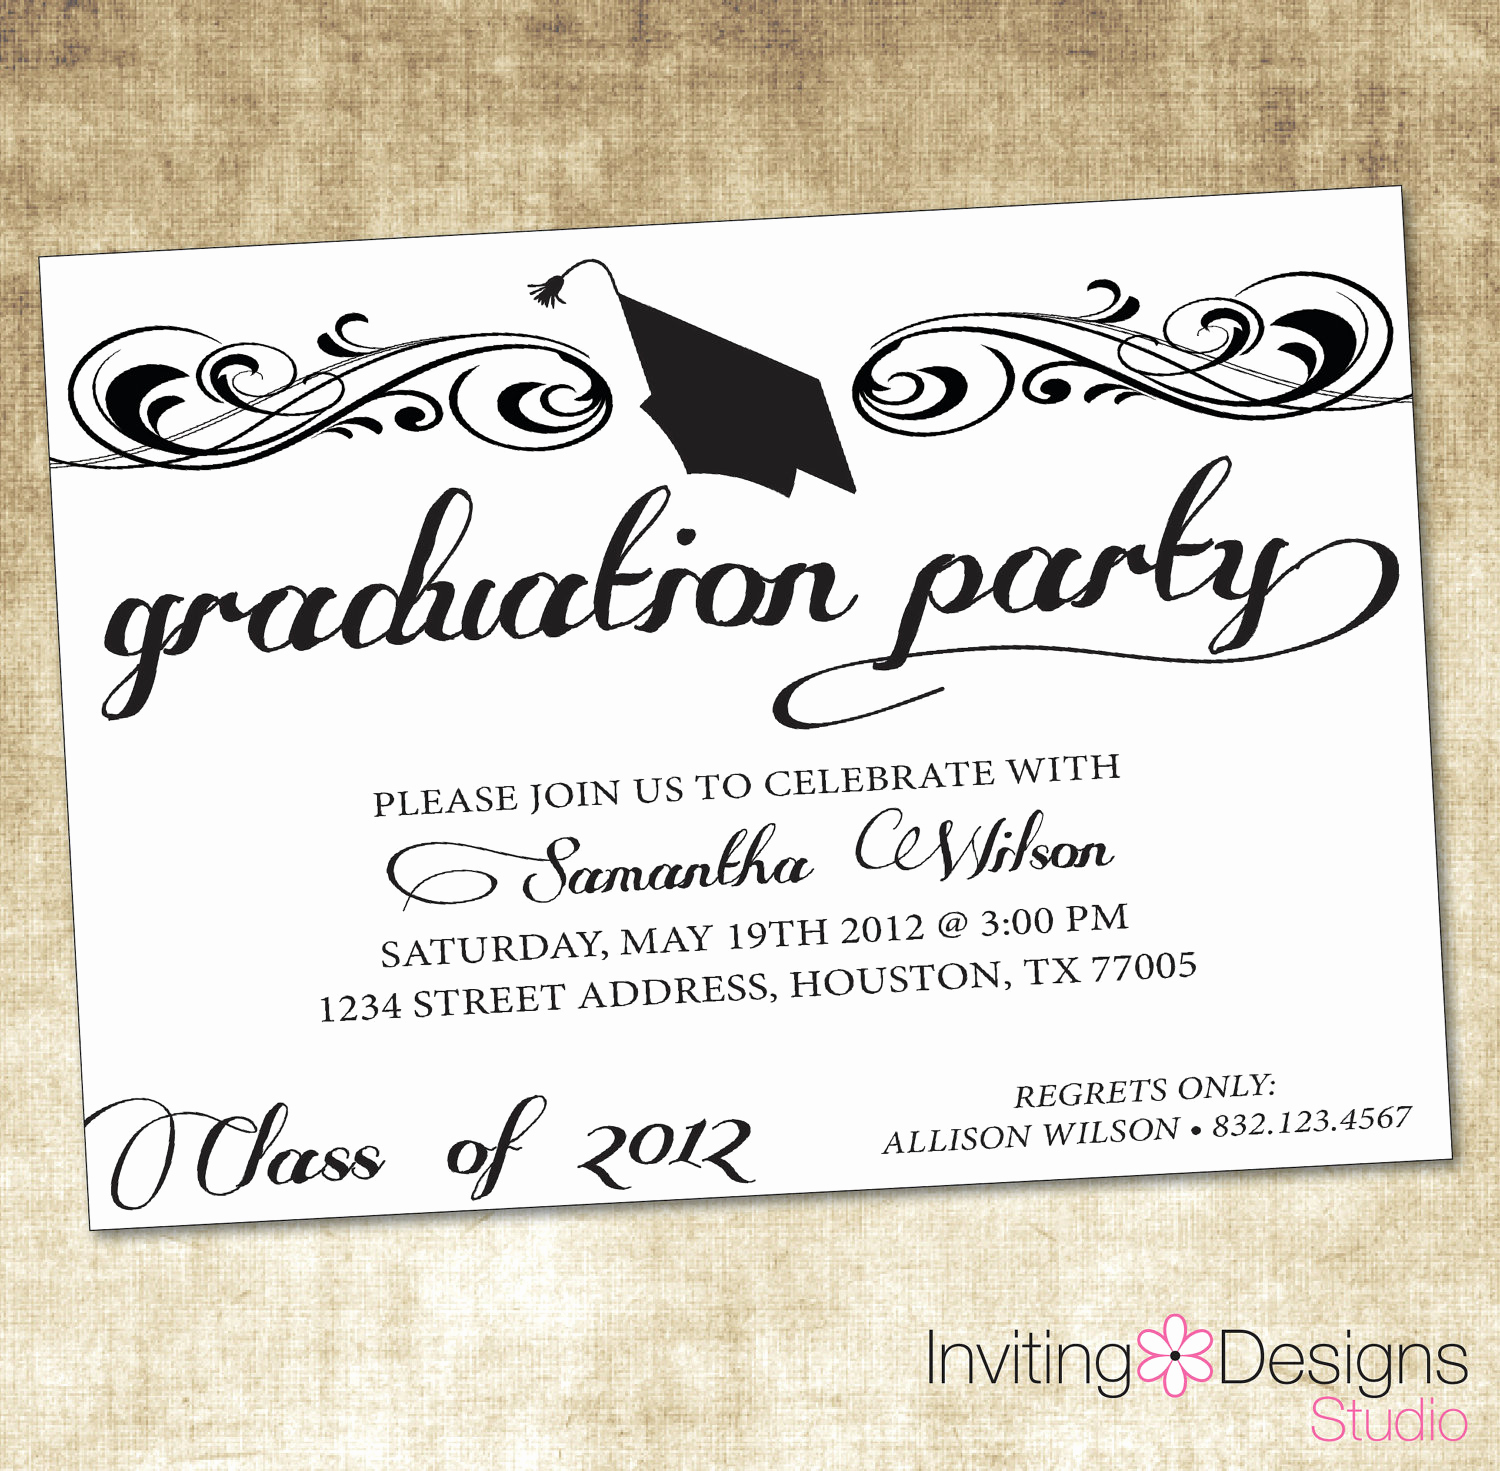 Graduation Party Invitation Wording Luxury Quotes for Graduation Party Invitations Quotesgram